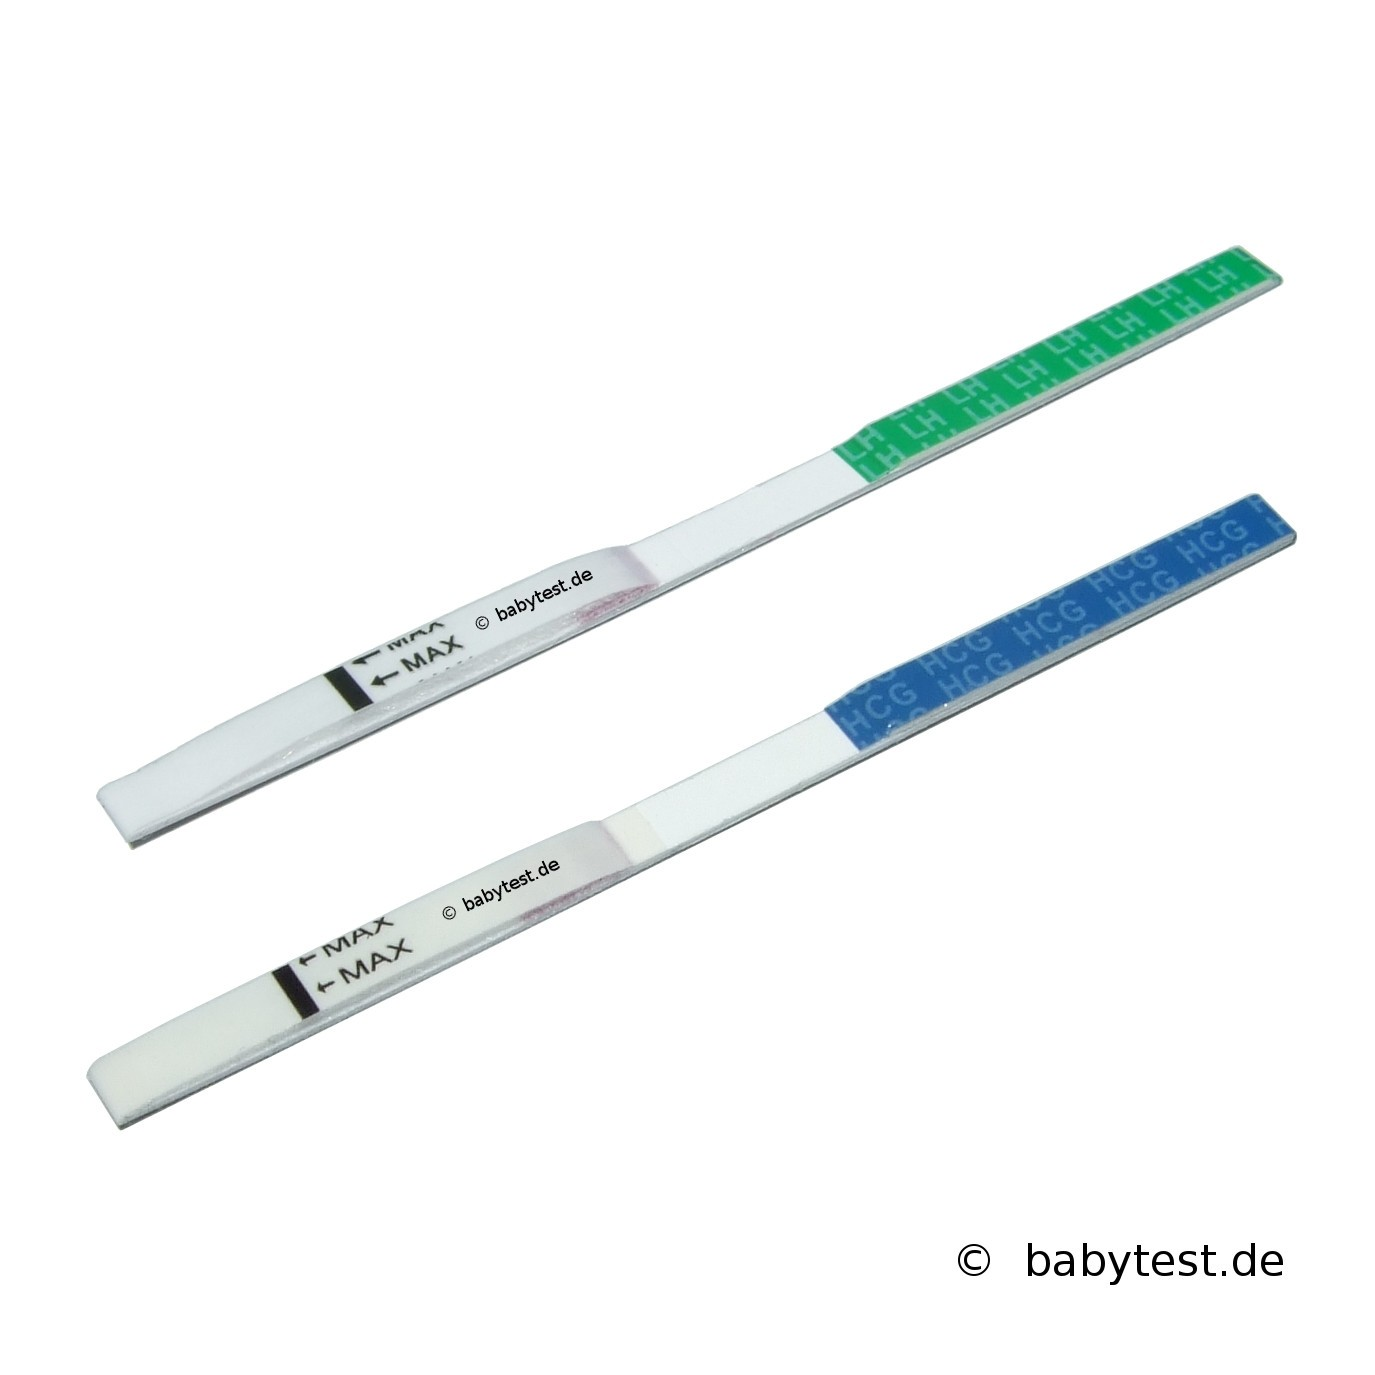 babytest-ovulationstest-40-schwangerschaftstest-10-kombination-ascimed